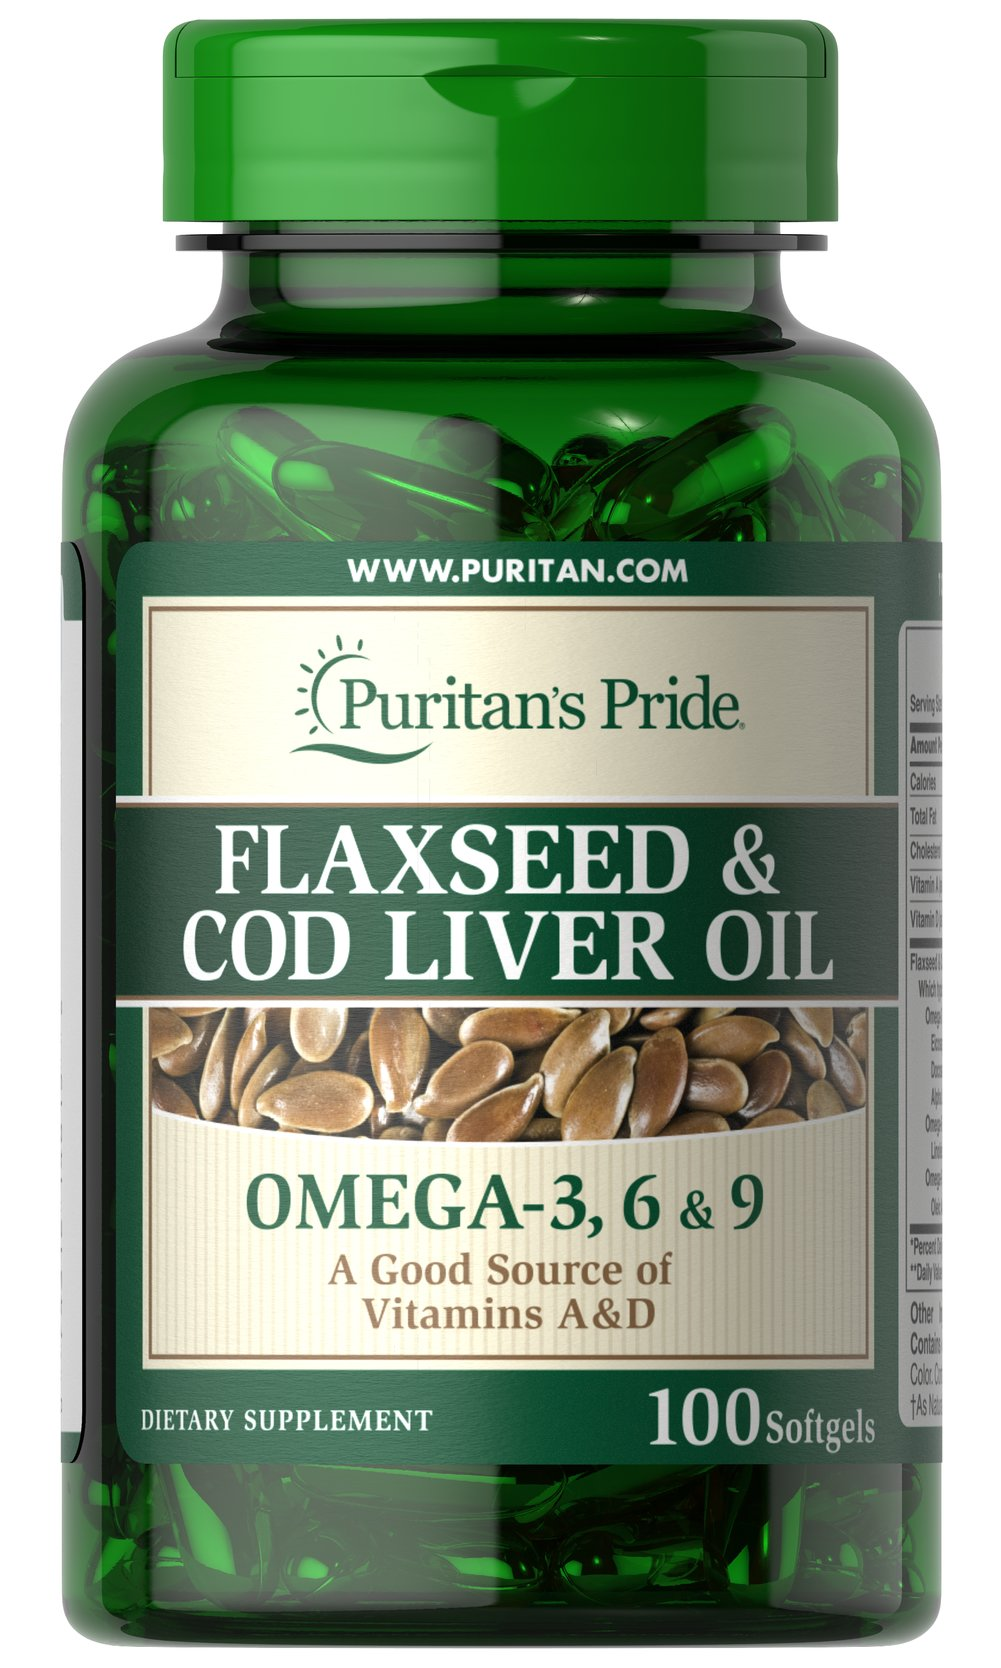 Flaxseed & Cod Liver Oil 1000 mg <p>Both <b>flaxseed and cod liver oil</b> are rich in essential <i>fatty acids</i>, which may play an important role in the proper functioning of the cardiovascular system.  Each softgel provides (500 mg) of cold-pressed linseed oil, plus enough cod liver oil to supply (1250 I.U.) of Vitamin A and (125 I.U.) of Vitamin D.</p> 100 Softgels 1000 mg $14.39